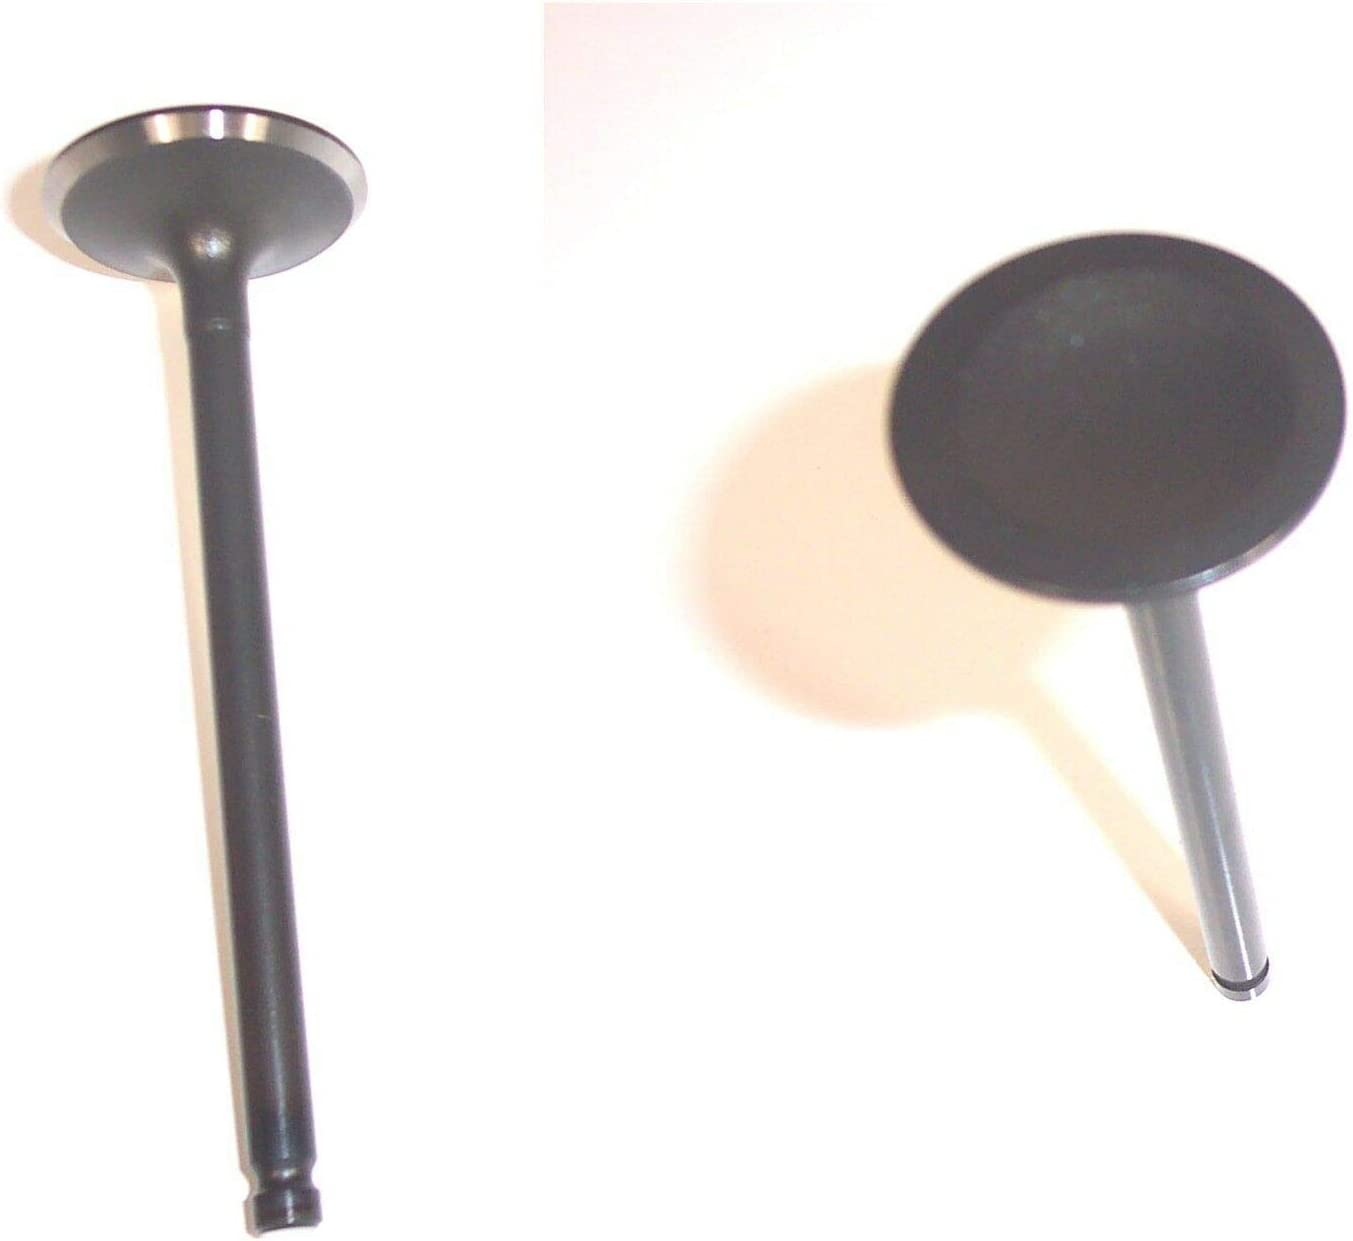 Replacement Engine Intake Valves 12 Spring new work Valve-SOHC Max 72% OFF